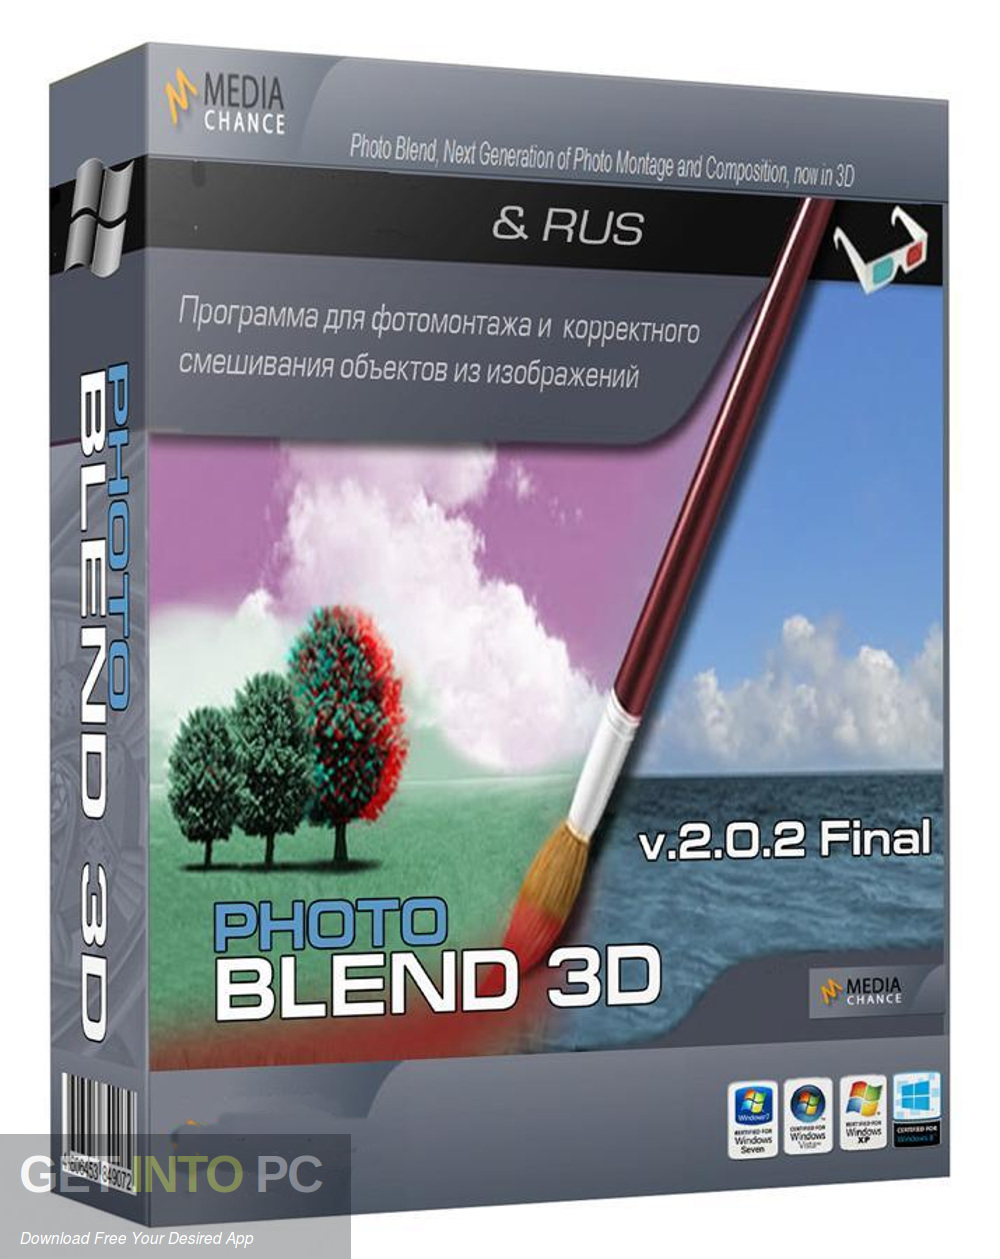 Mediachance Photo BLEND 3D Free Download-GetintoPC.com